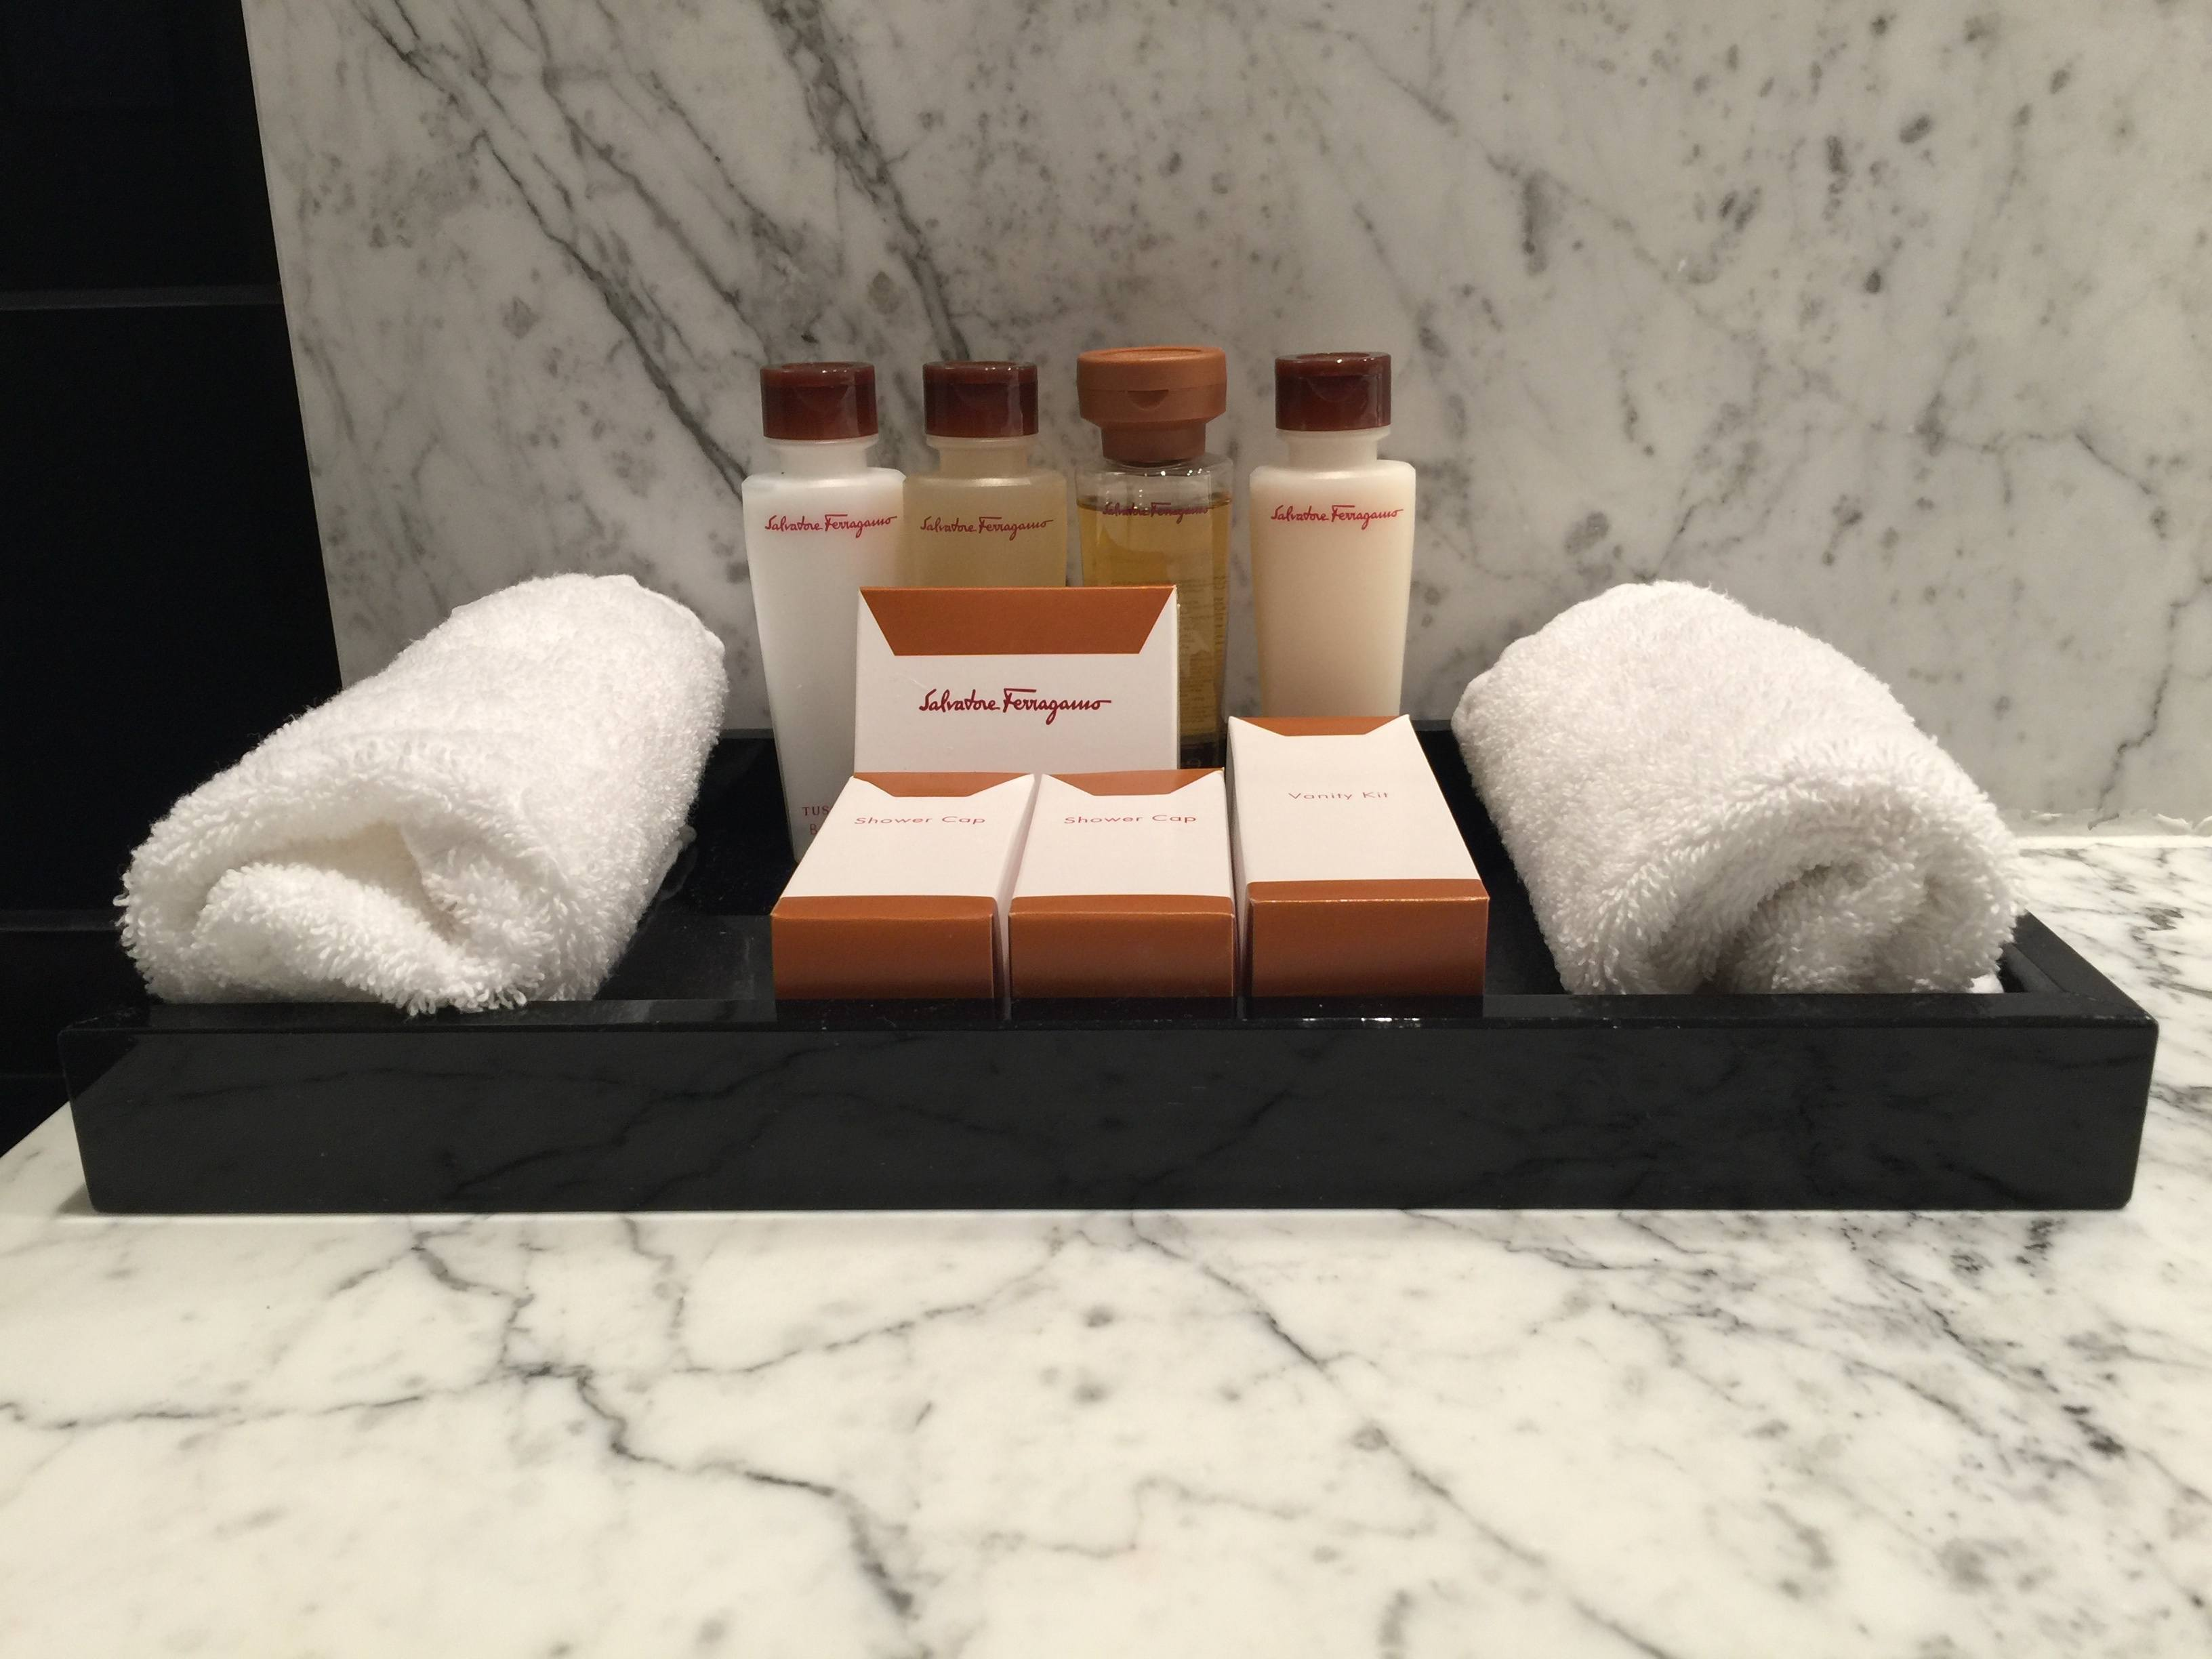 Salvatore Ferragamo bath amenities at Trianon Palace Versailles